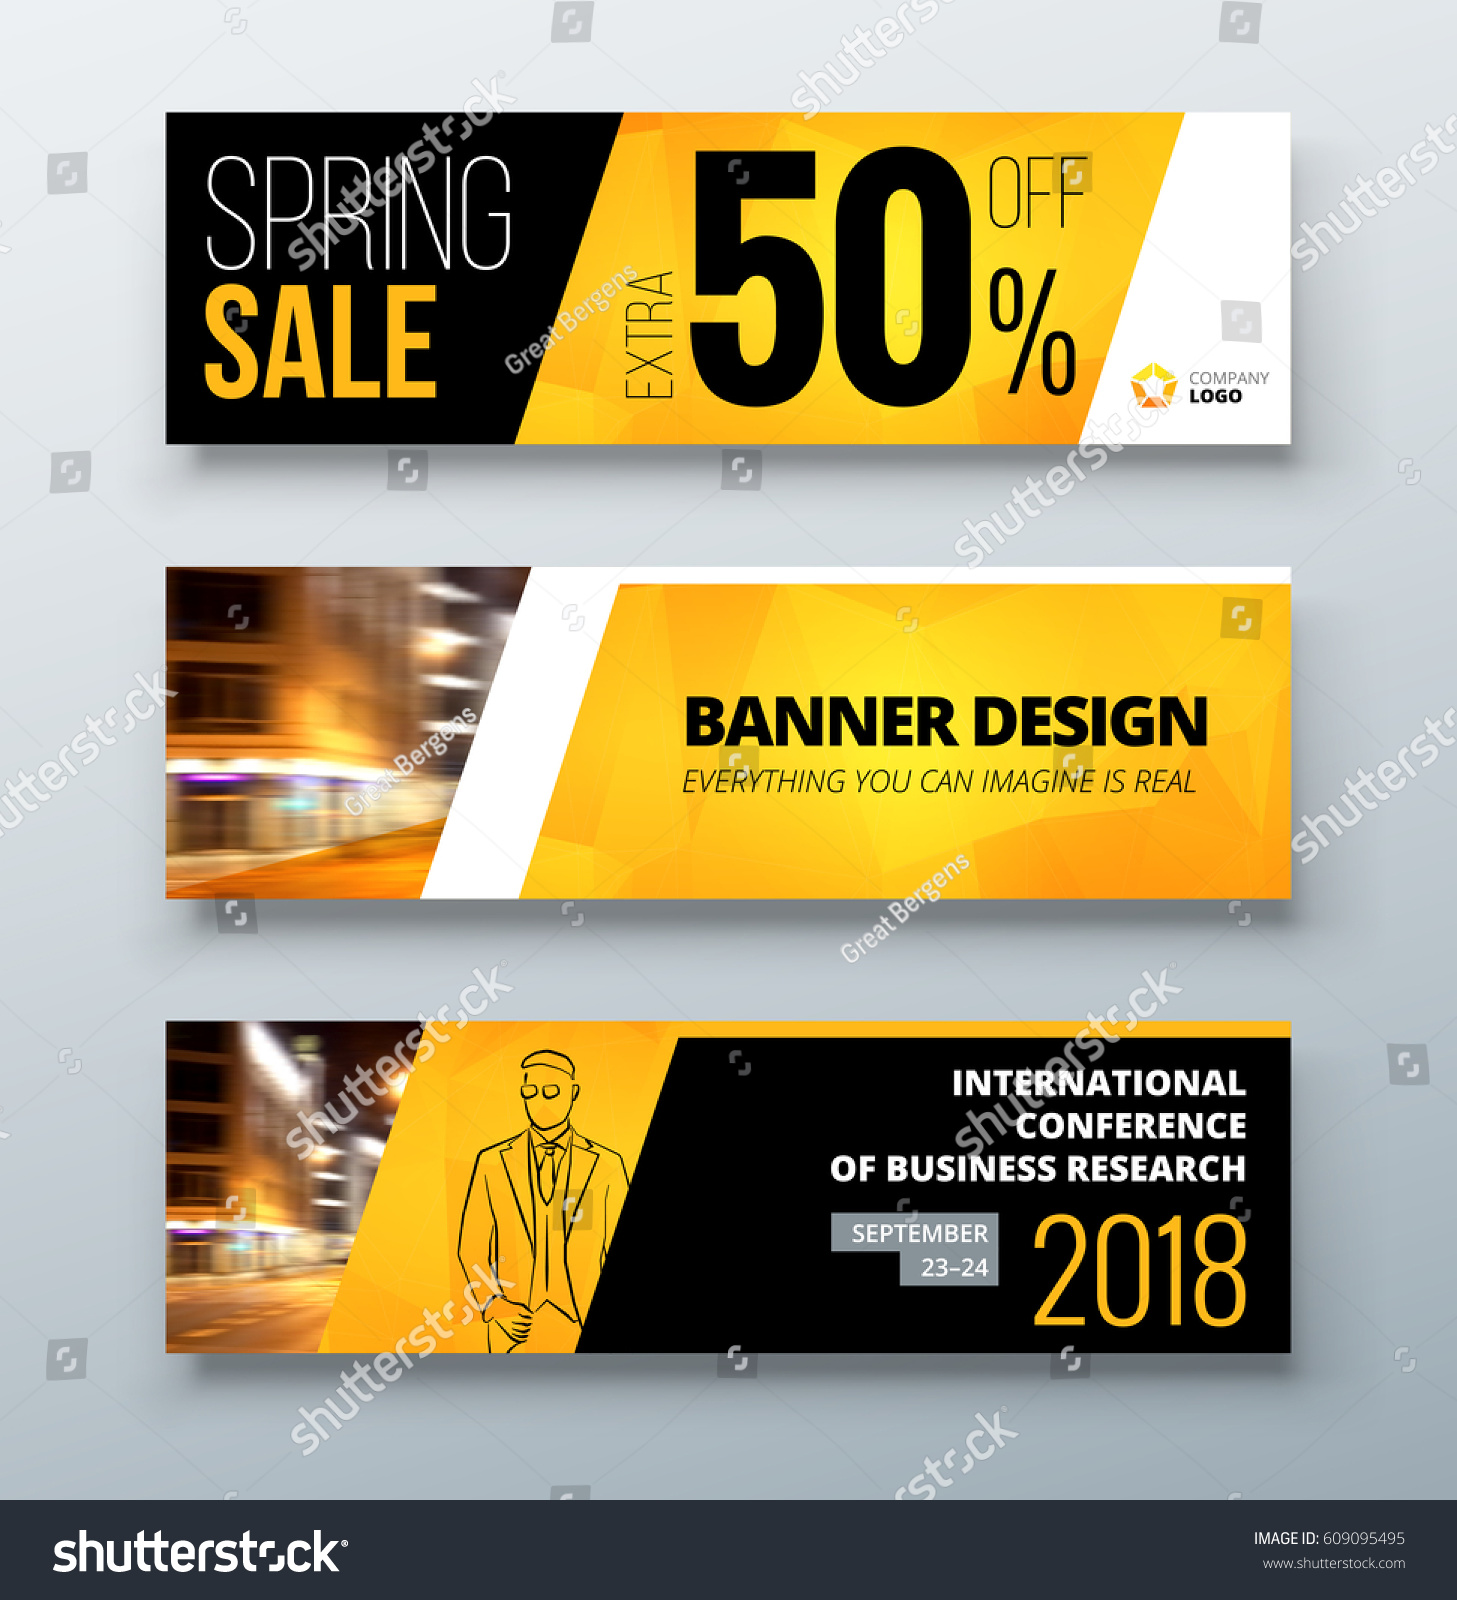 banner template design presentation concept black stock vector, Presentation templates